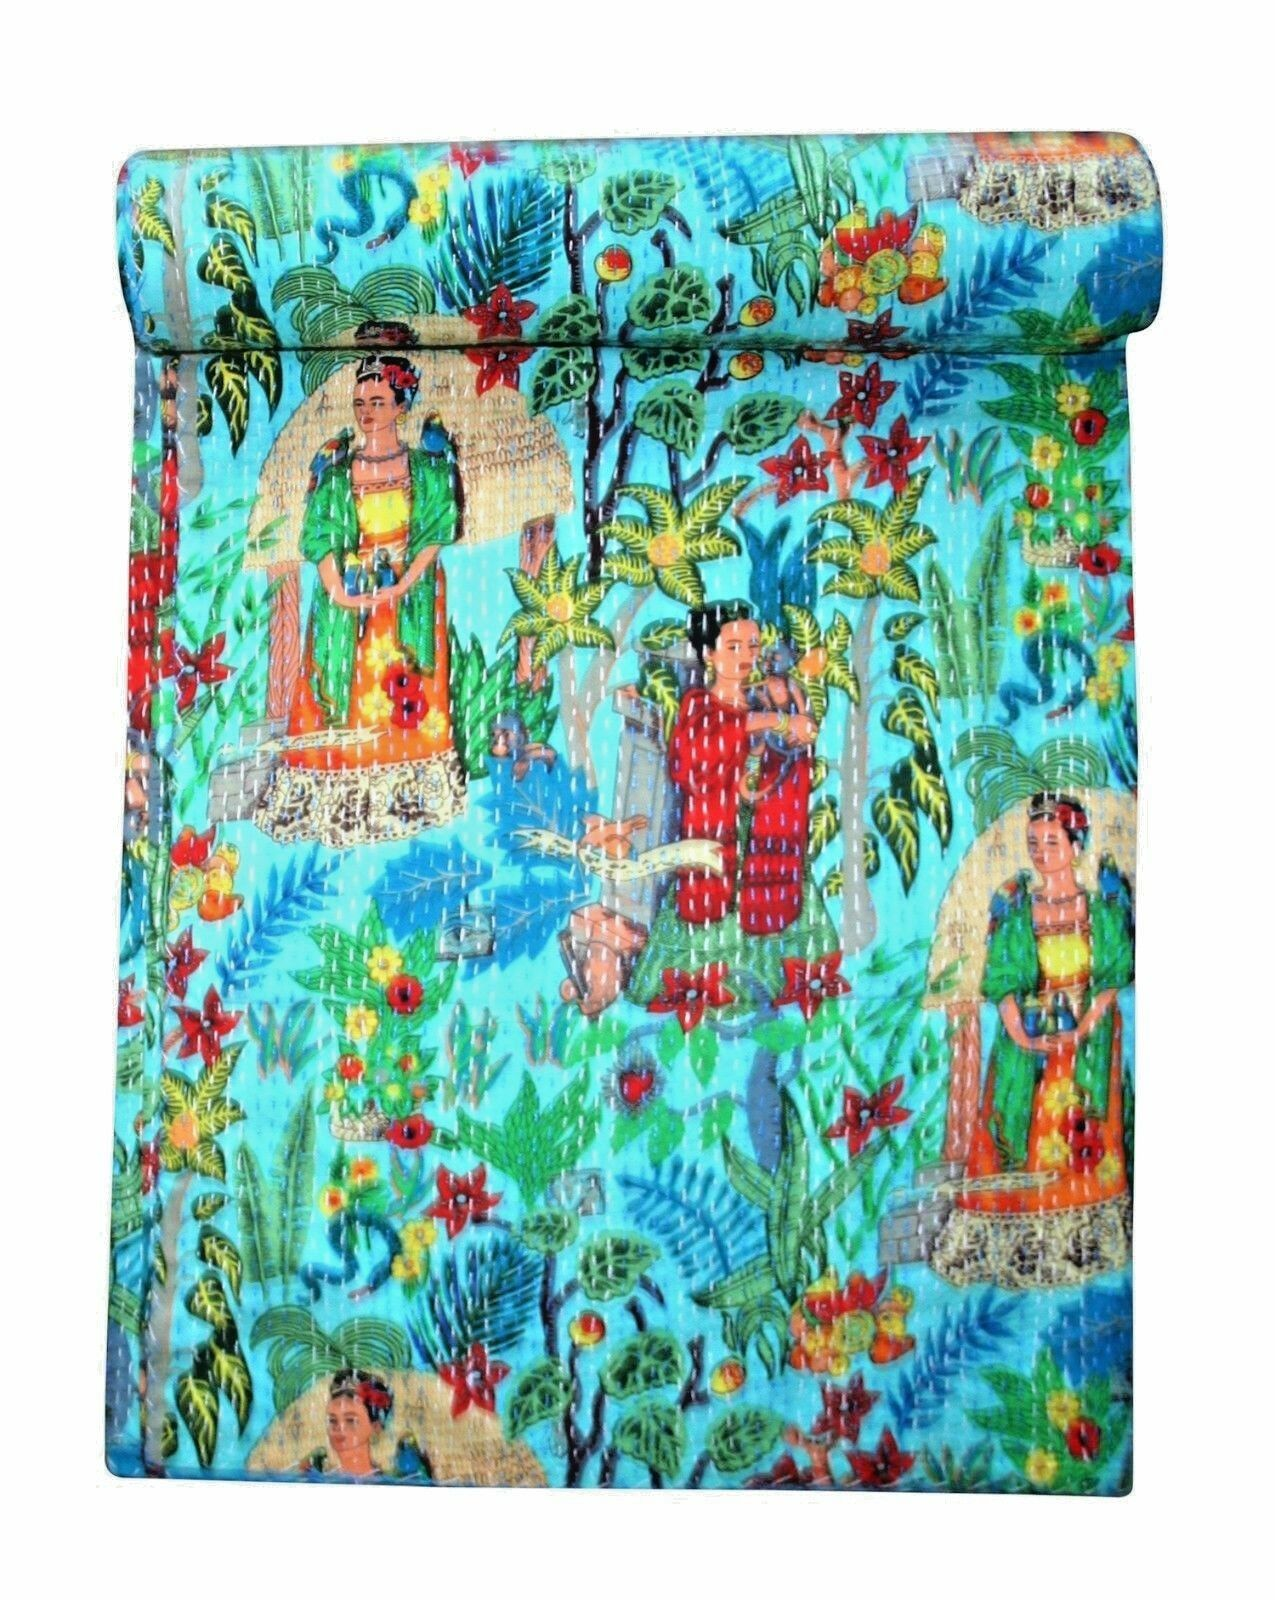 Farida Kahlo Print Queen of Mexican Kantha Quilt Bedspread Kantha Blanket Throw